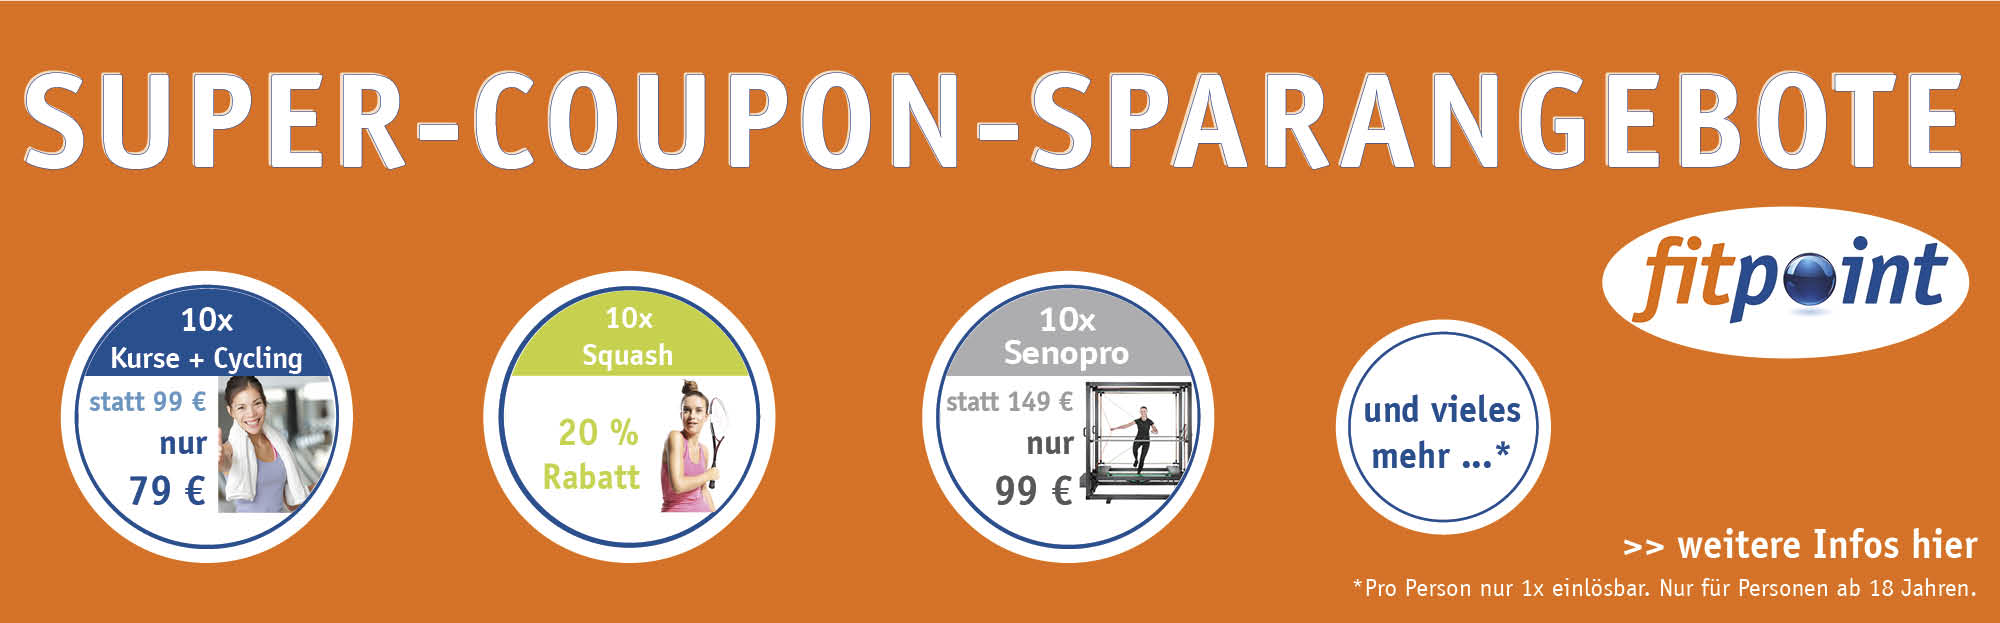 Super-Coupon-Sparangebote Herbst 2020 Background